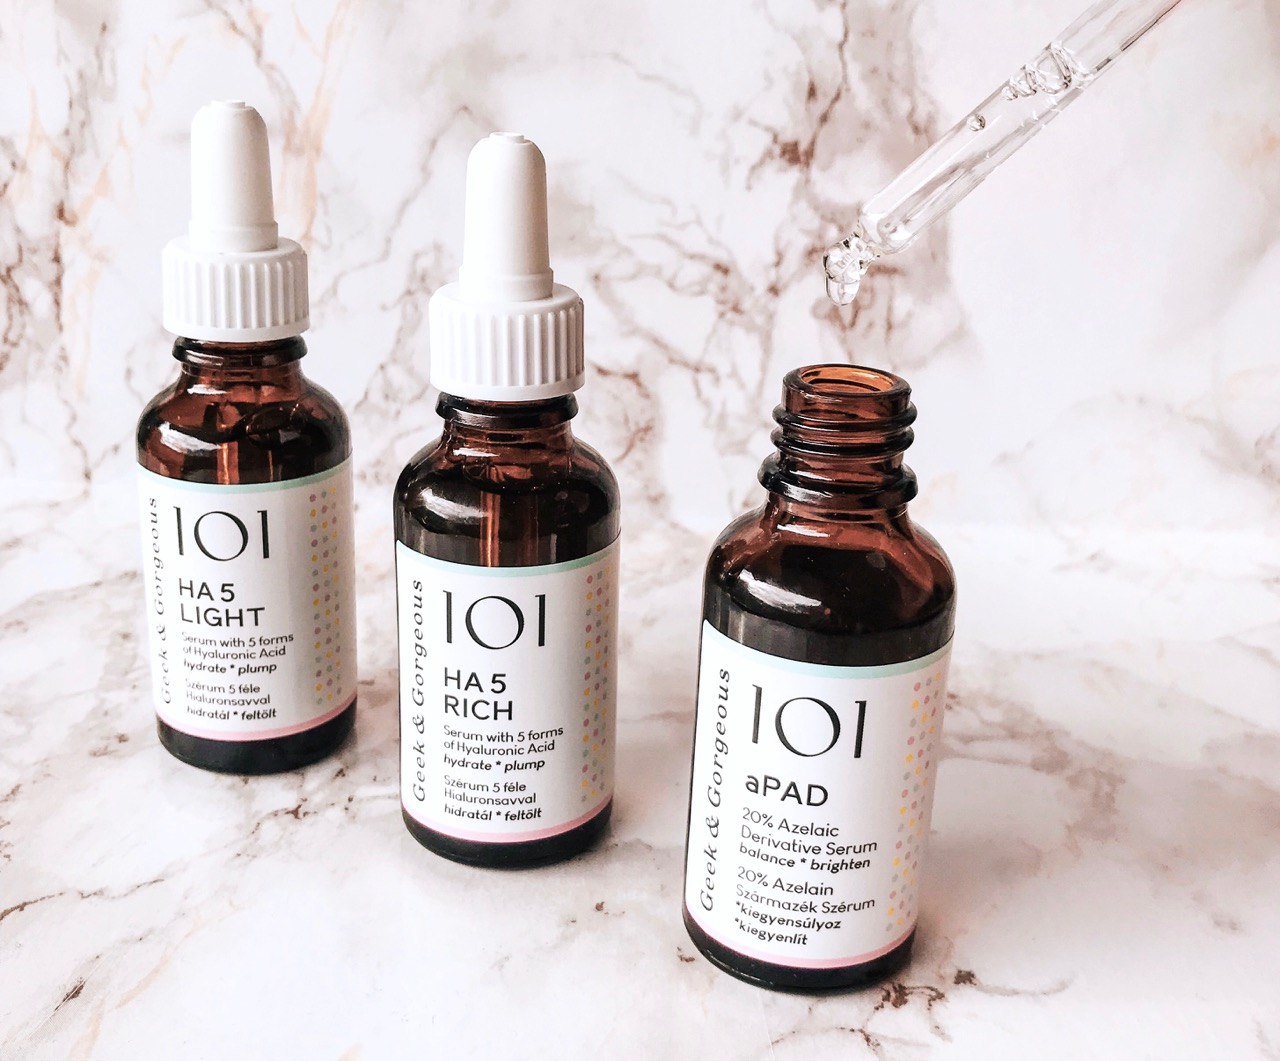 geek & gorgeous 101 serums aPAD texture